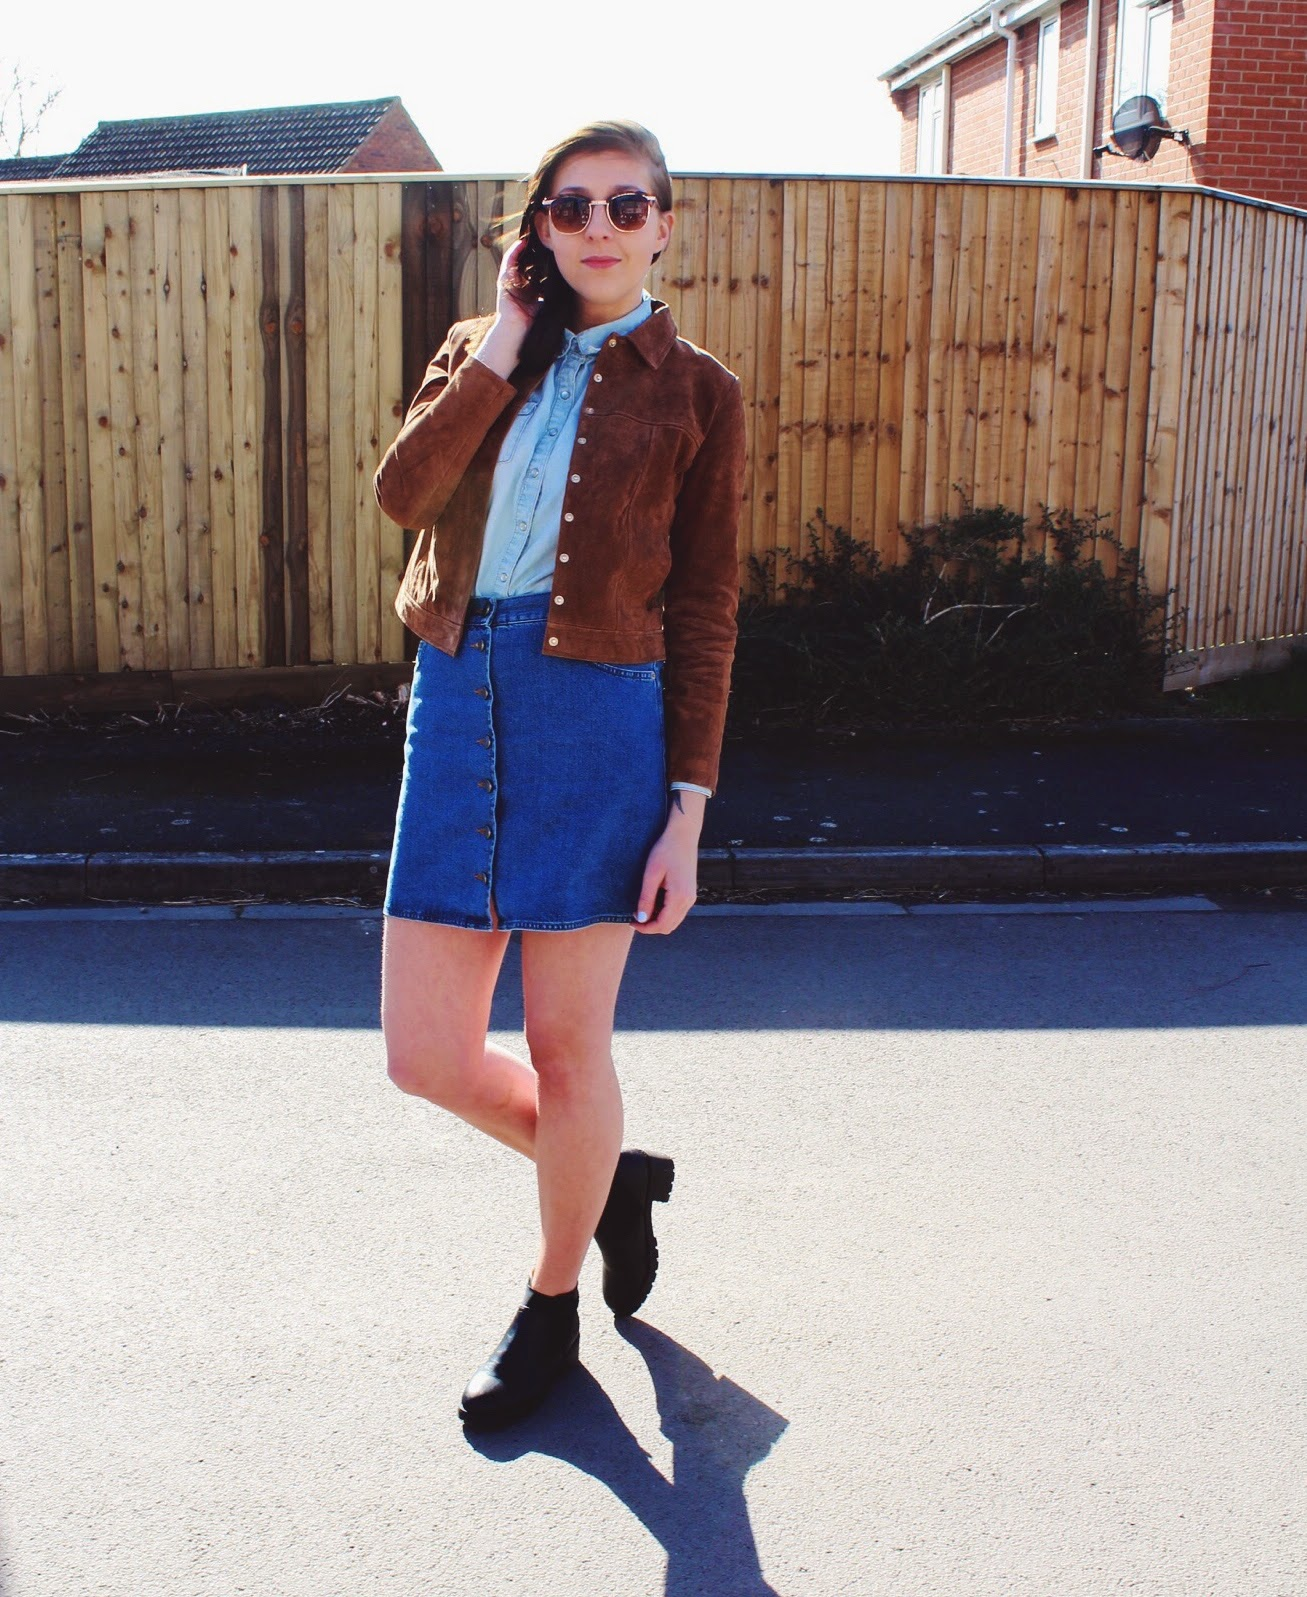 fashion, fashionbloggers, asseenonme, wiw, mango, asos, asda, denim, suede, 70strend, halcyonvelvet, fbloggers, fblogger, ootd, outfitoftheday, lotd, lookoftheday, doubledenim, whatimwearing, suedejacket, buttonthroughdenimskirt